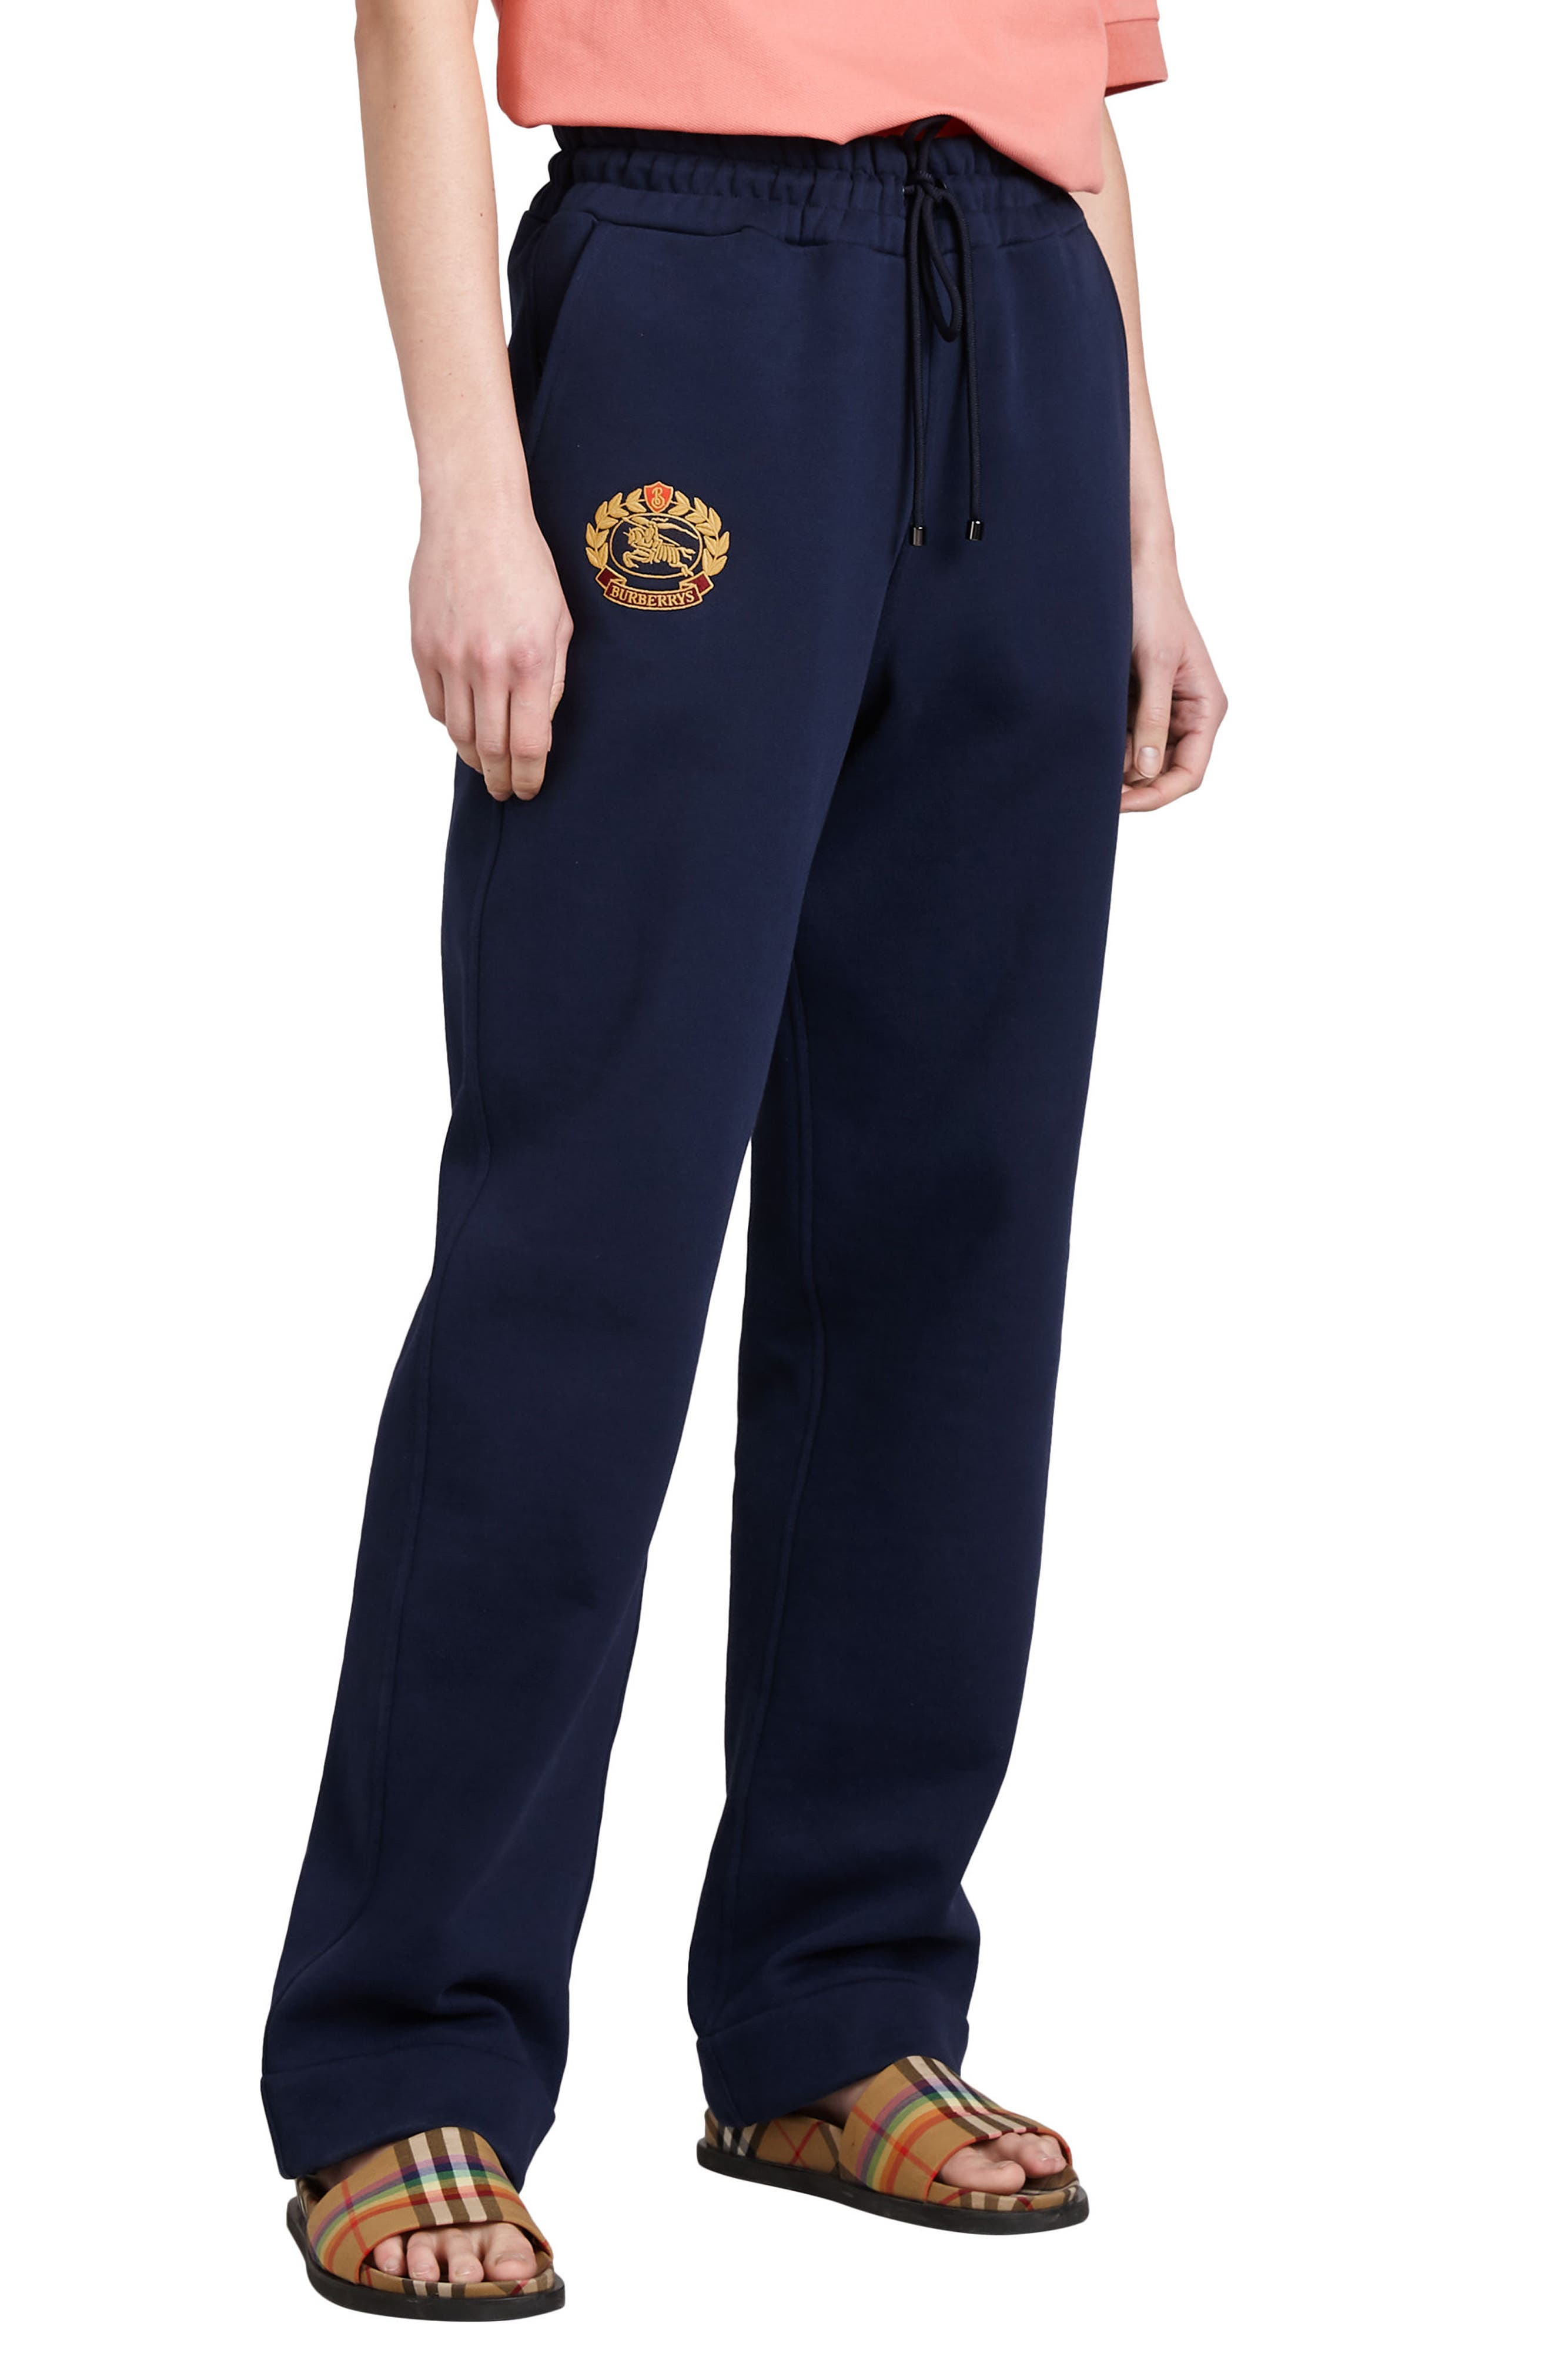 Burberry Vintage Crest Sweatpants